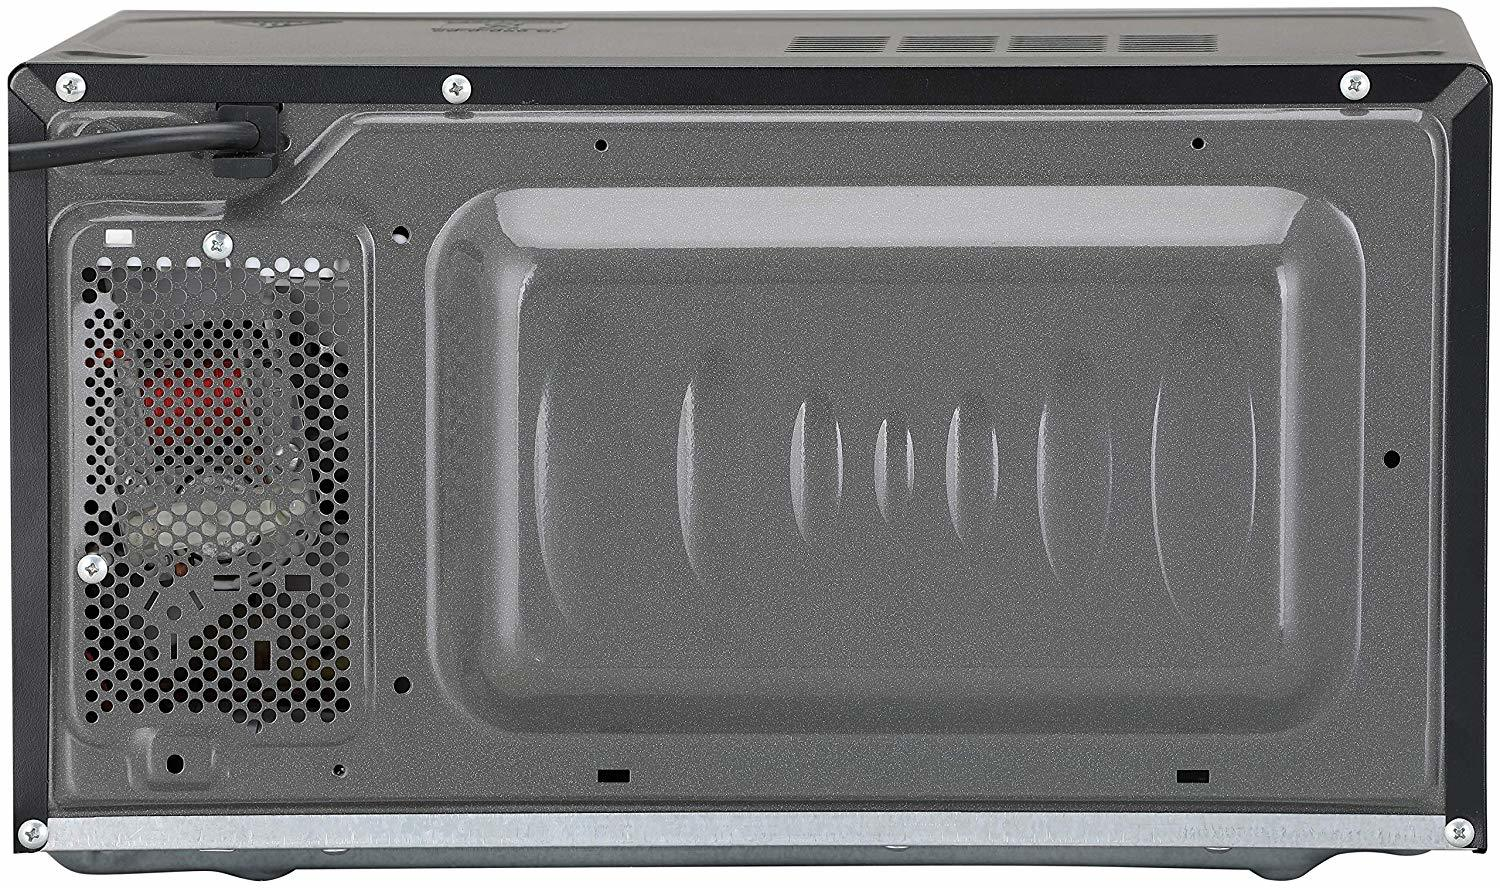 LG 20 L Solo Microwave Oven (MS2043BP, Black) with Free Starter Kit